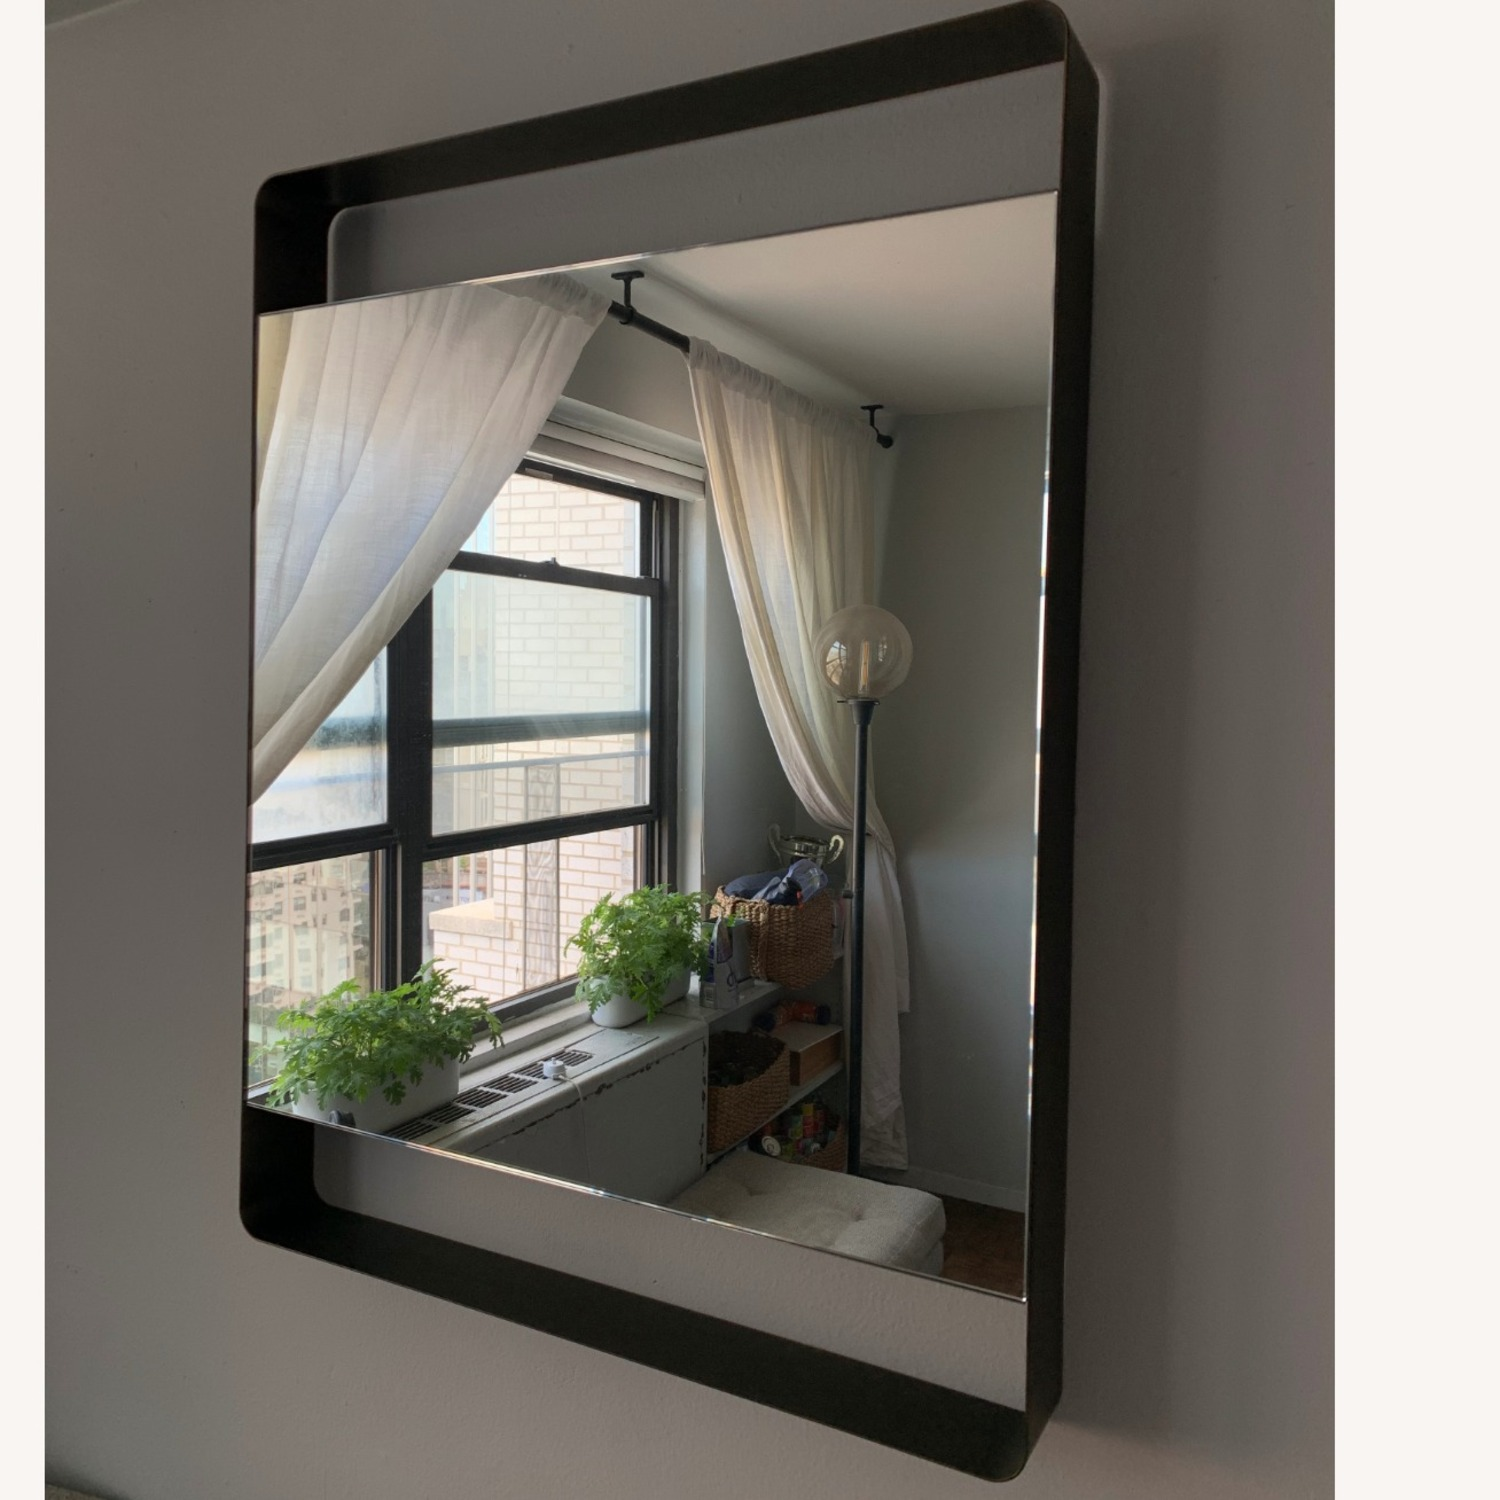 Crate & Barrel Colby Brass Mirror - image-1